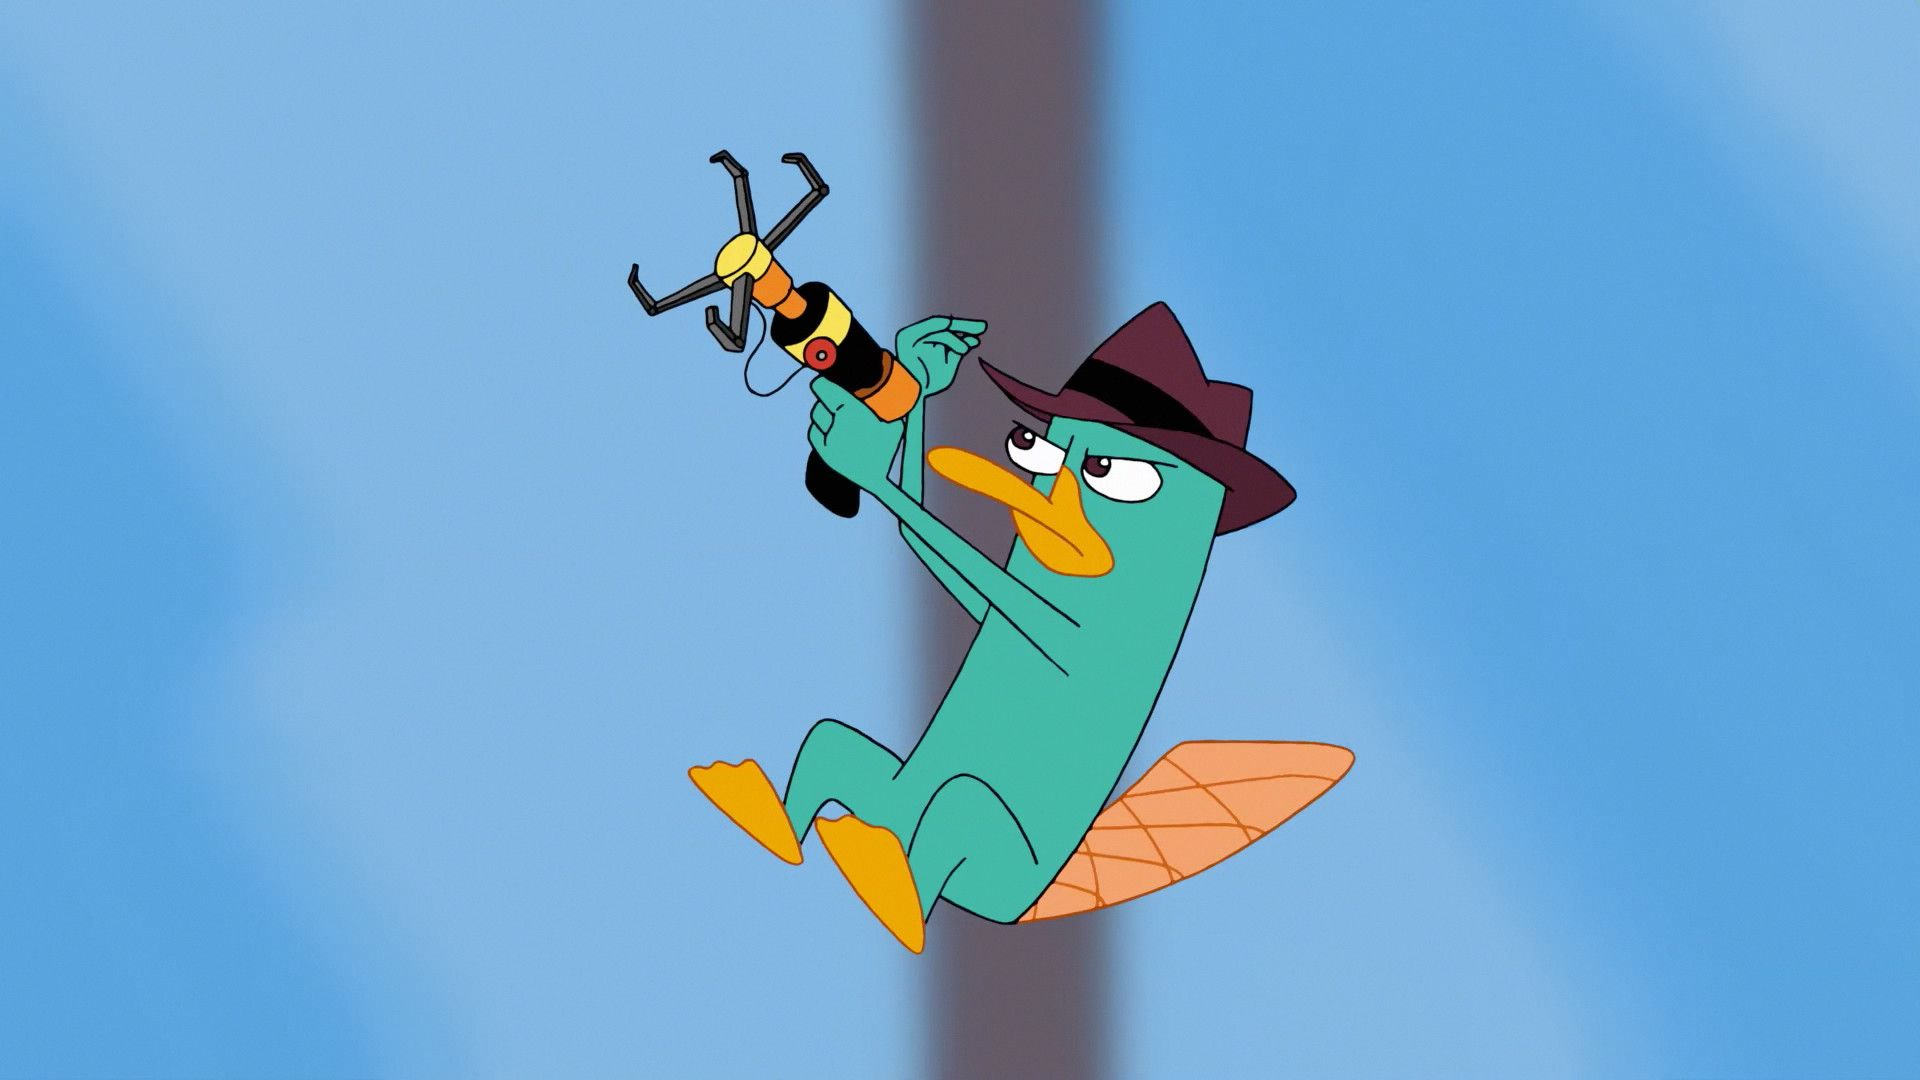 perry the platypus wallpapers 26 wallpapers � adorable